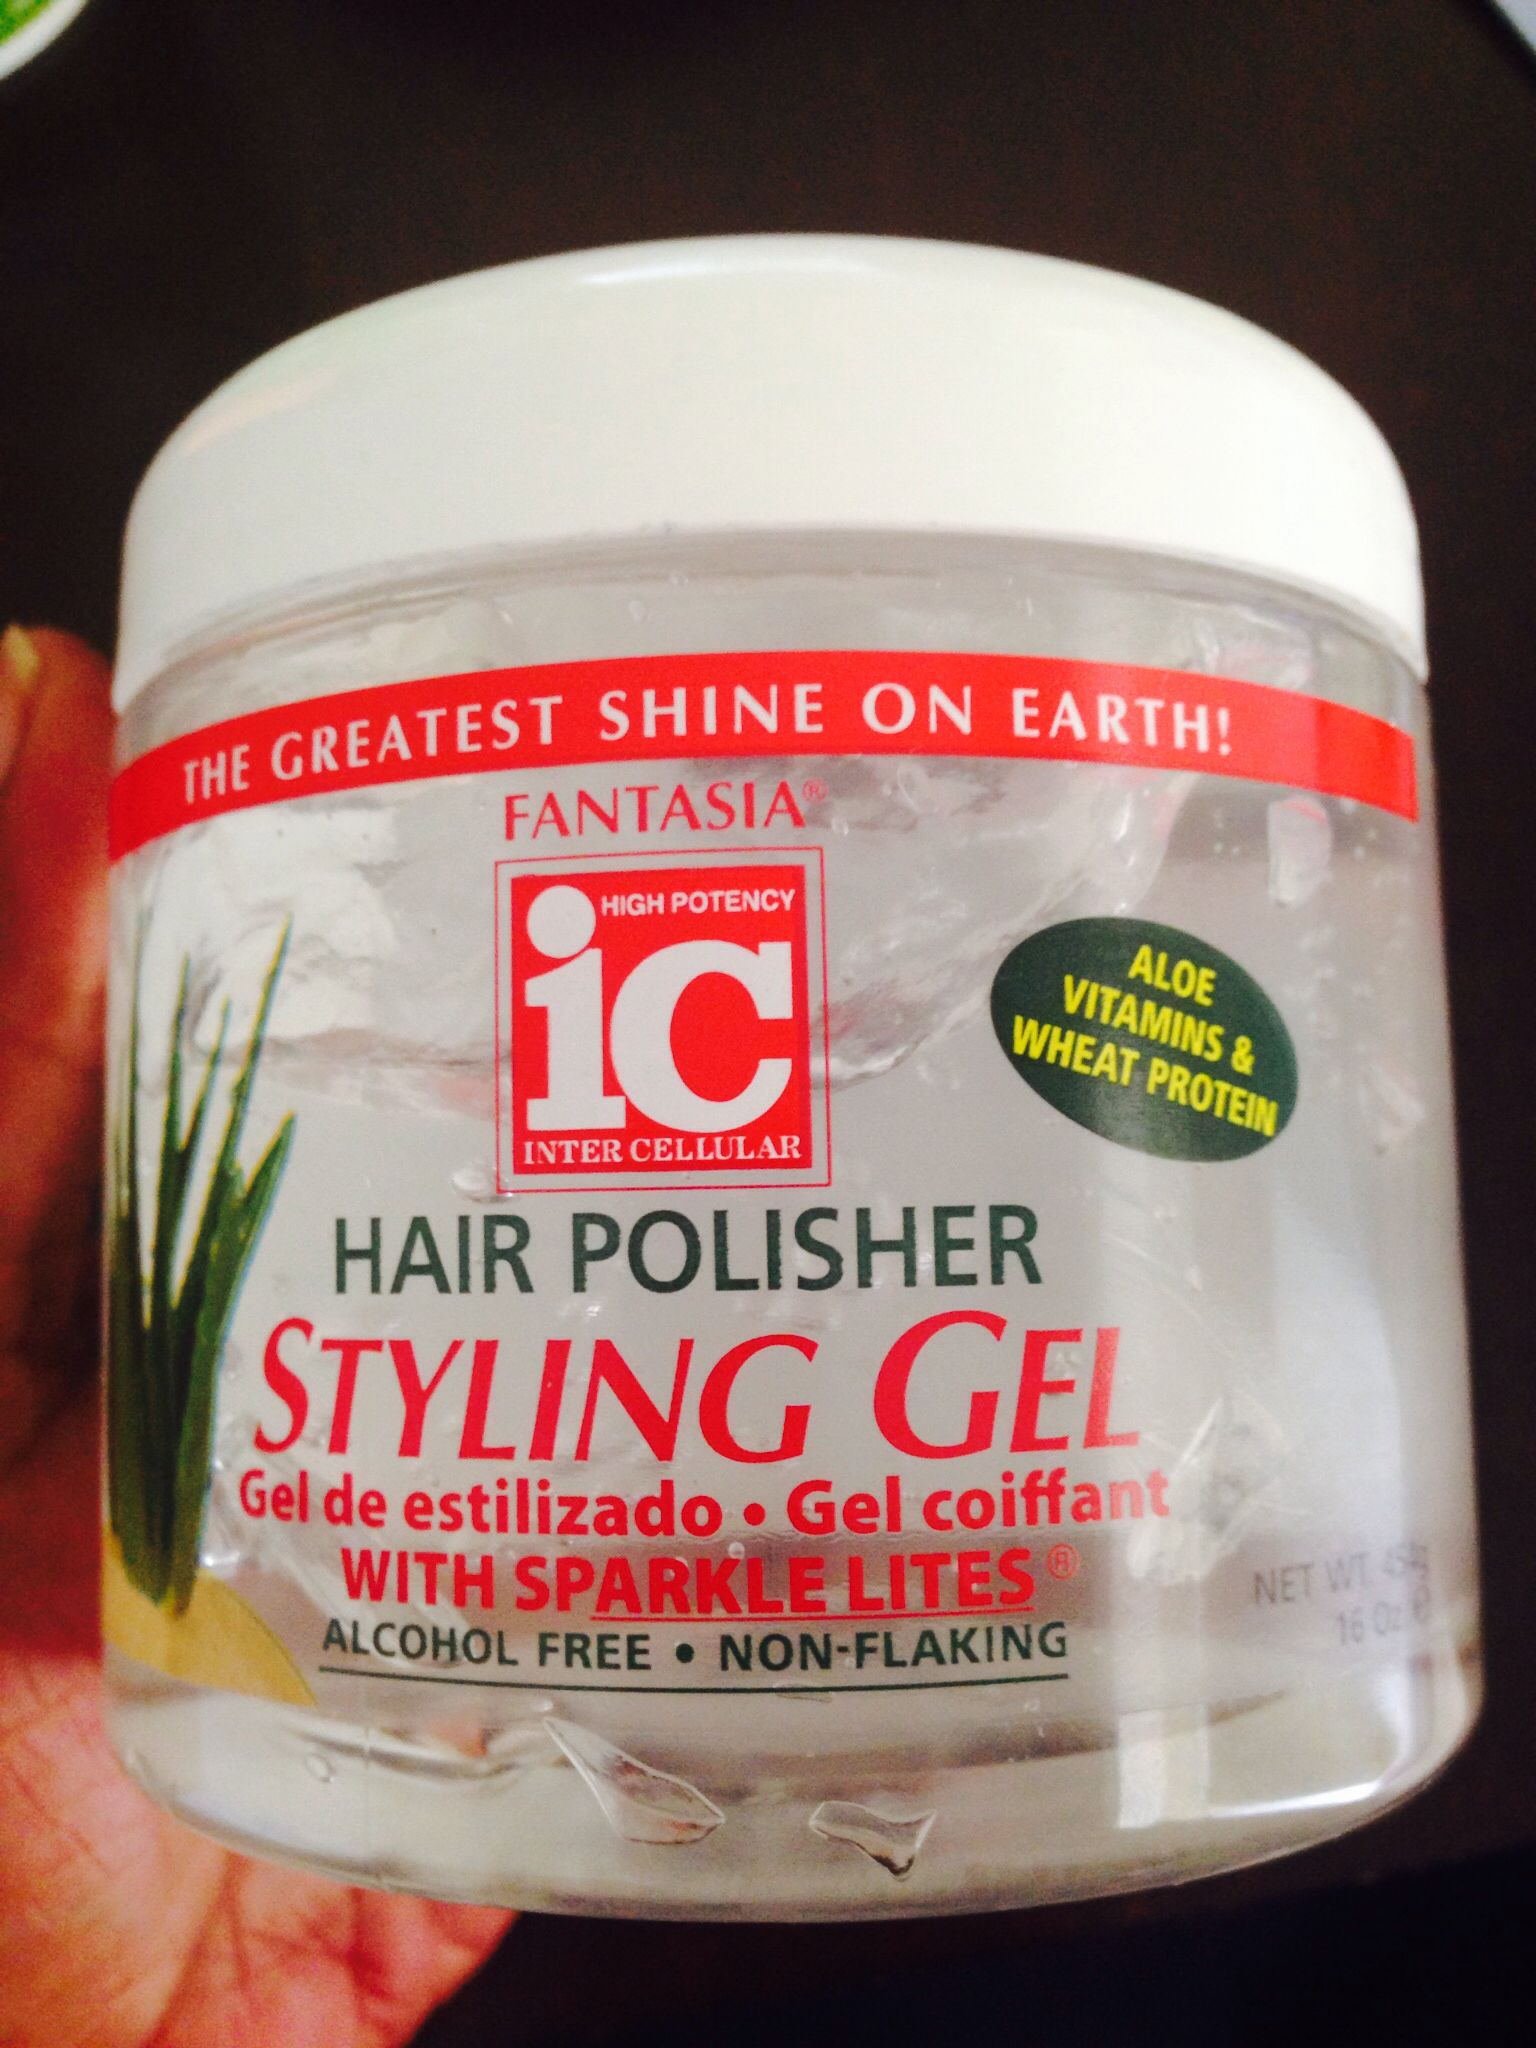 Hair gel that's non flaking and alcohol free and gives